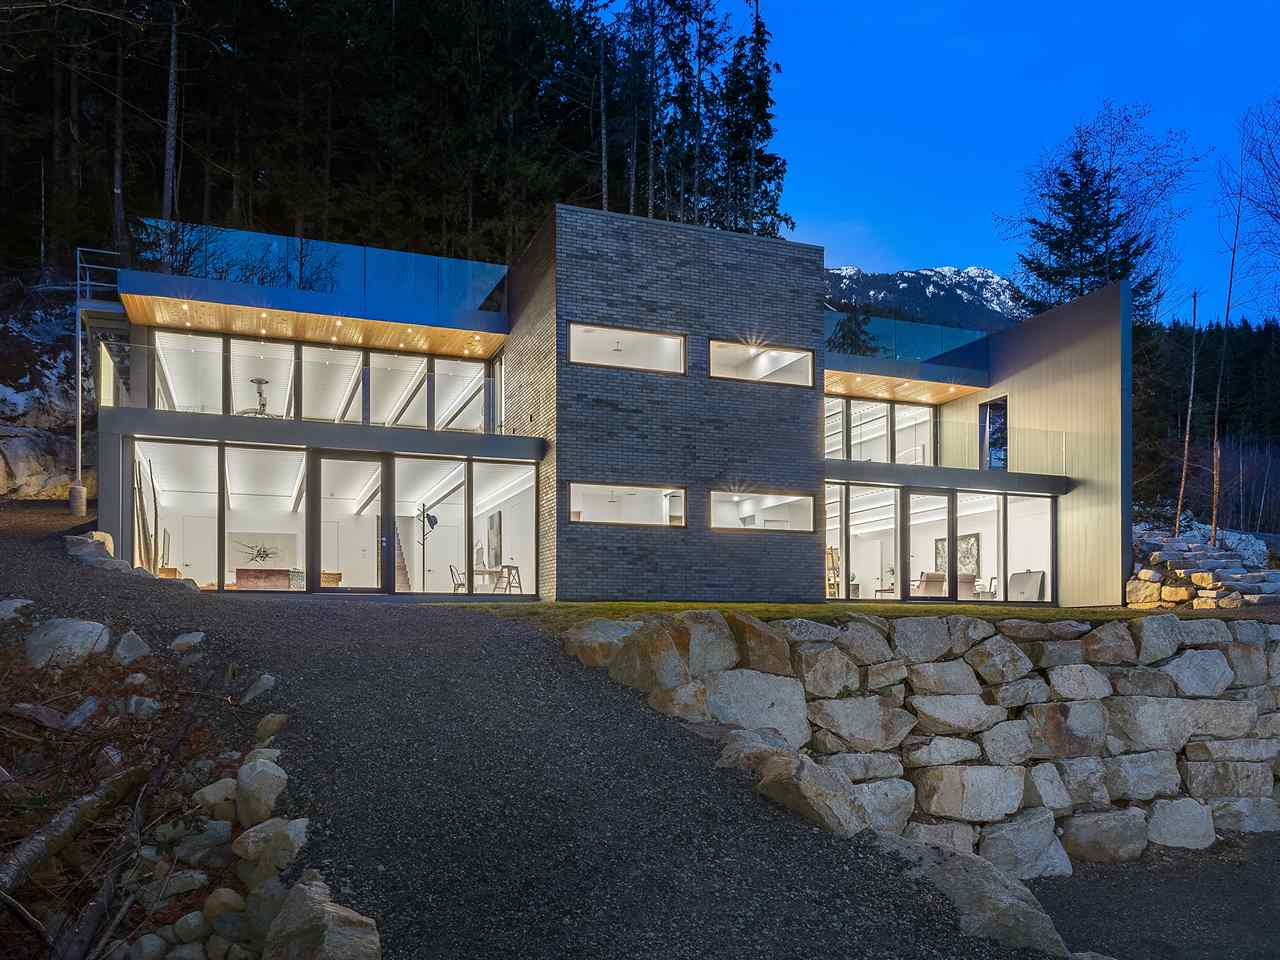 This architecturally designed modern home sits amid nature on 1.67 acres, high above the world. From its perch, you are surrounded by the vistas of forest, mountains & Howe Sound. Every room brings an element inside, with views from floor to ceiling windows & custom sliding walls, so the outdoors is always part of your day. Constructed of steel, to seismic levels, the home is open concept, w/ 6 beds, formal living & dining areas & a great room to relax in. Other features include custom kitchen with granite & built-in appliances, oak hardwood staircases, reclaimed Douglas fir wet bar, double showers, & concrete floors with hydronic heat. The home also features a large, almost 1900 sq. ft. roof top patio to escape to, which is wired for hot tub & solar panels & has a helicopter landing pad.